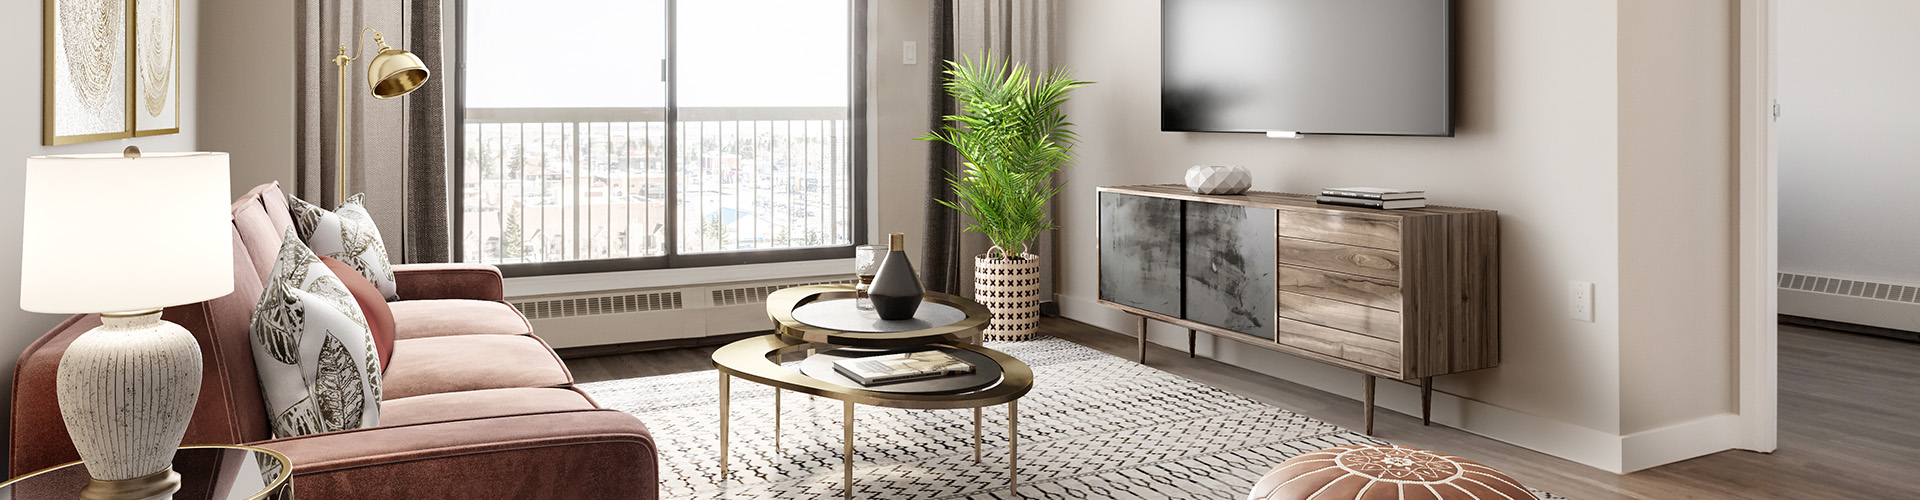 Bohemian living room at Minto Apartments, Radisson Place in Calgary